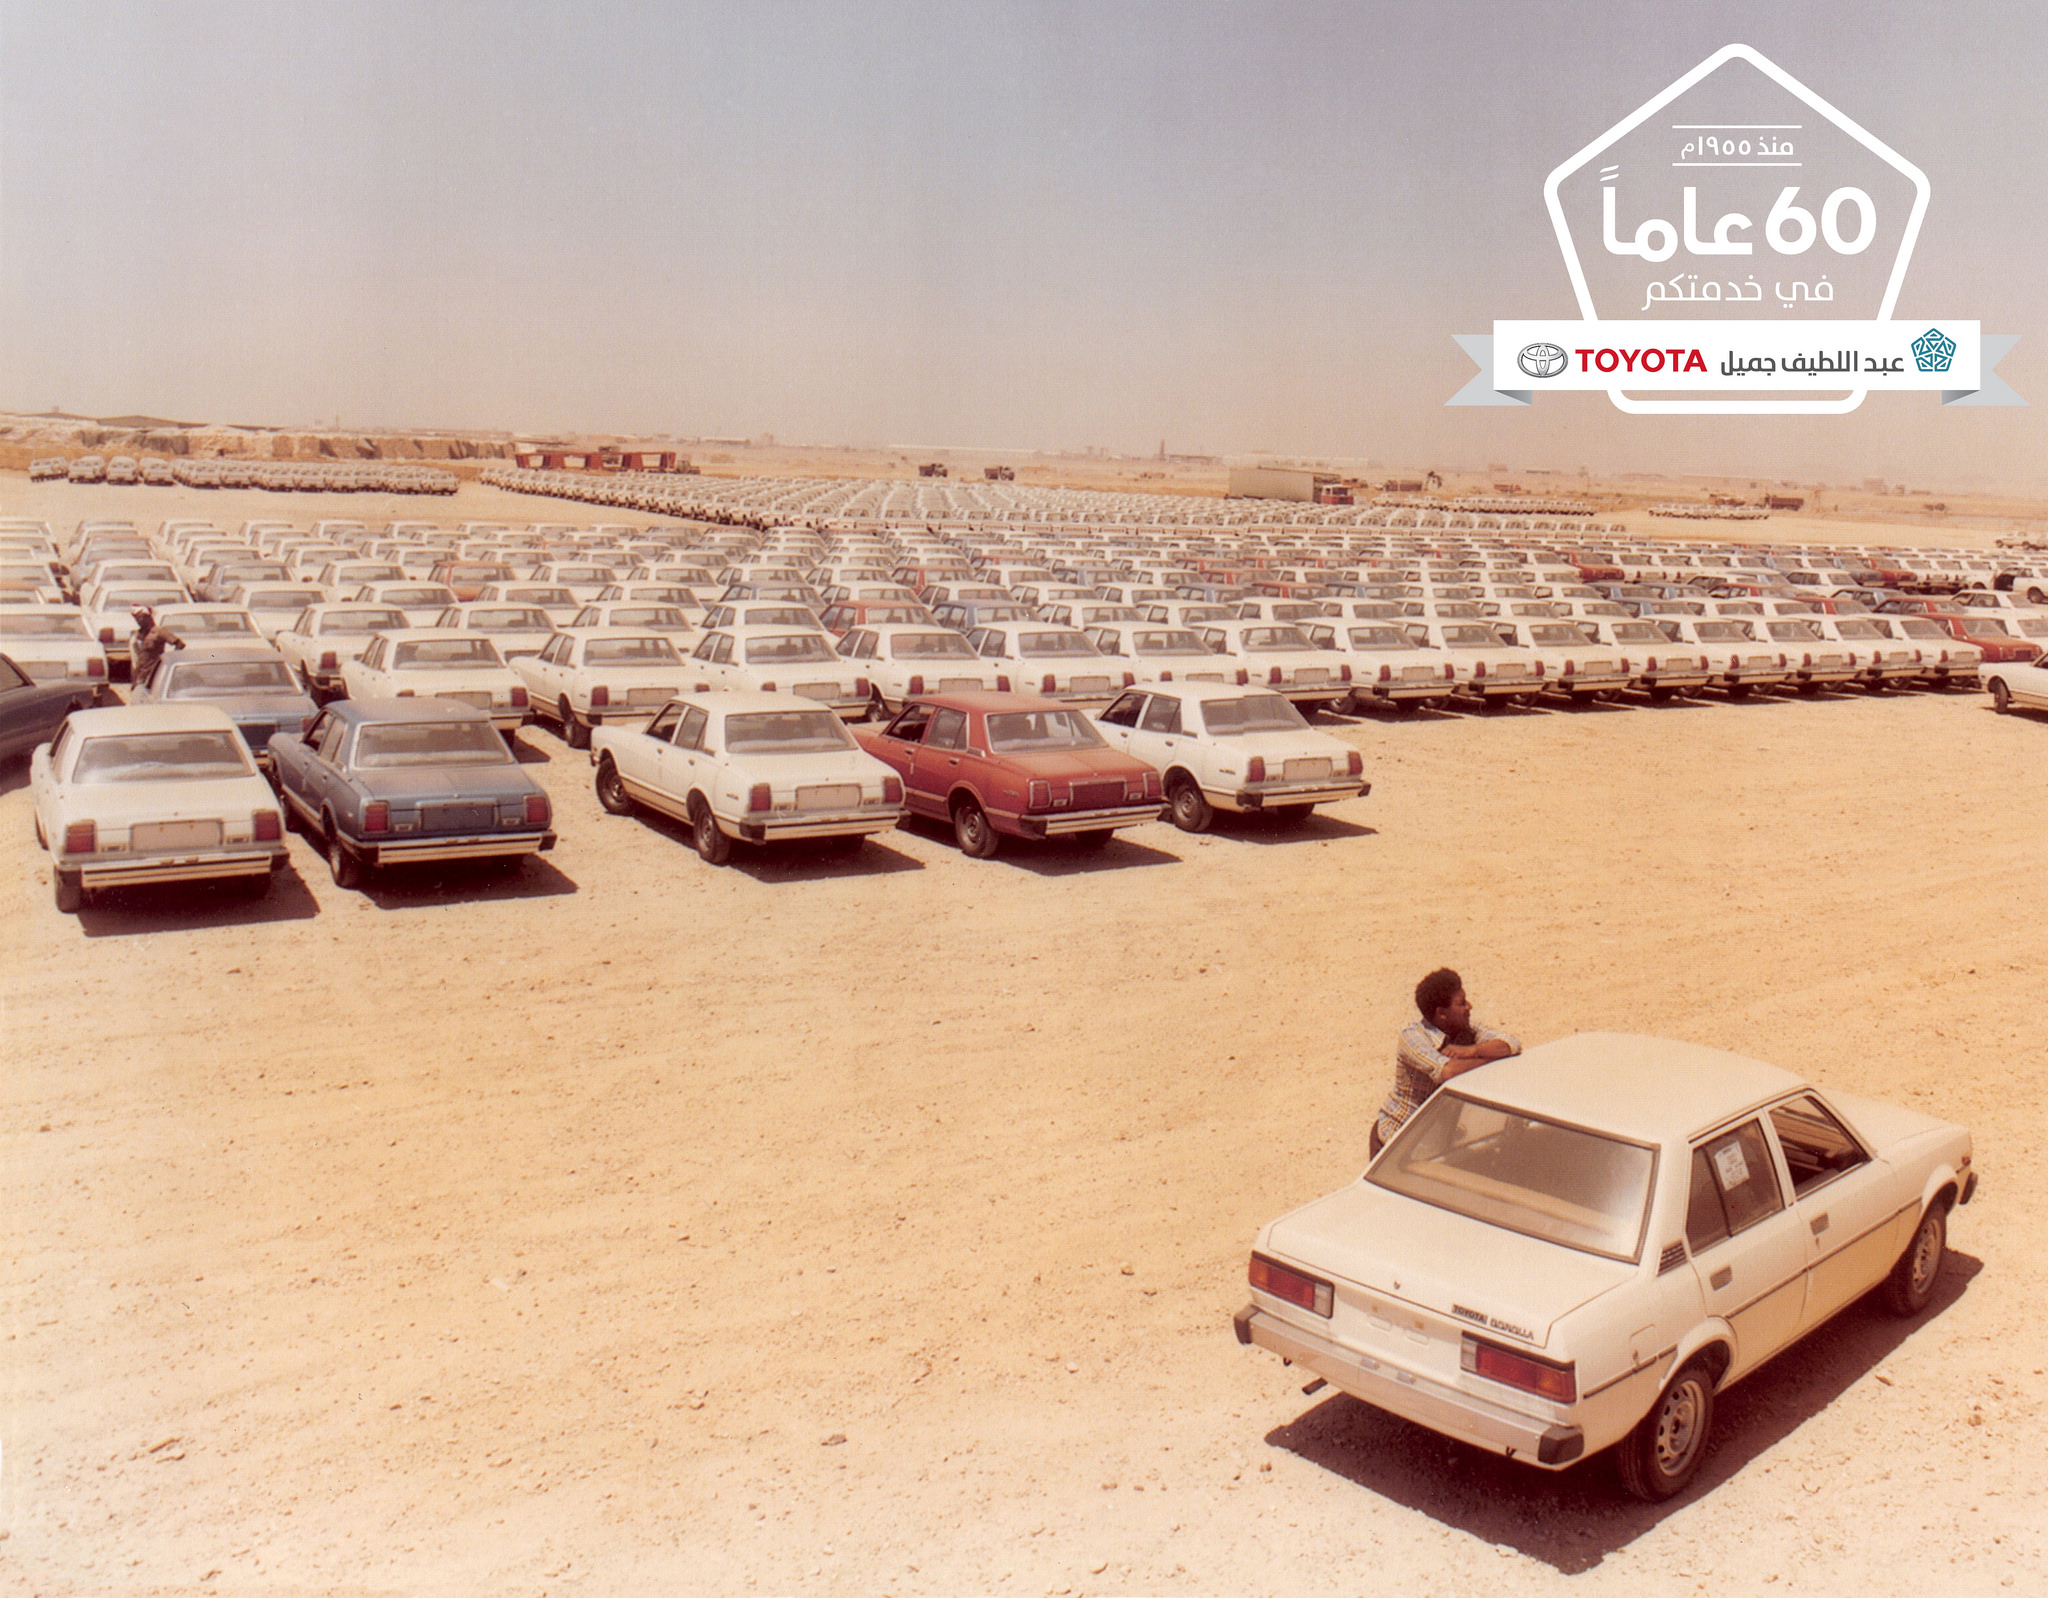 See the top 50 best selling models by clicking on the title - Toyota 60 Years Saudi Arabia